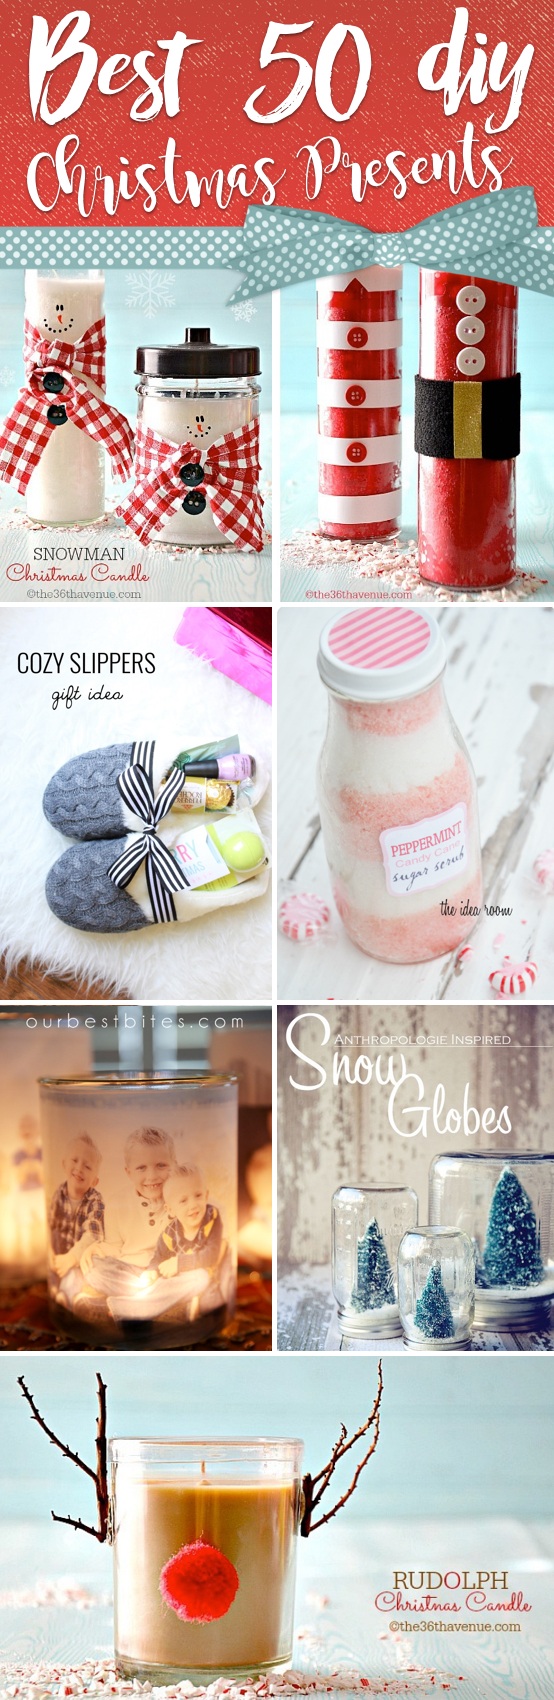 50 Diy Christmas Presents Reminding Your Loved Ones Of You For Years Cute Diy Projects